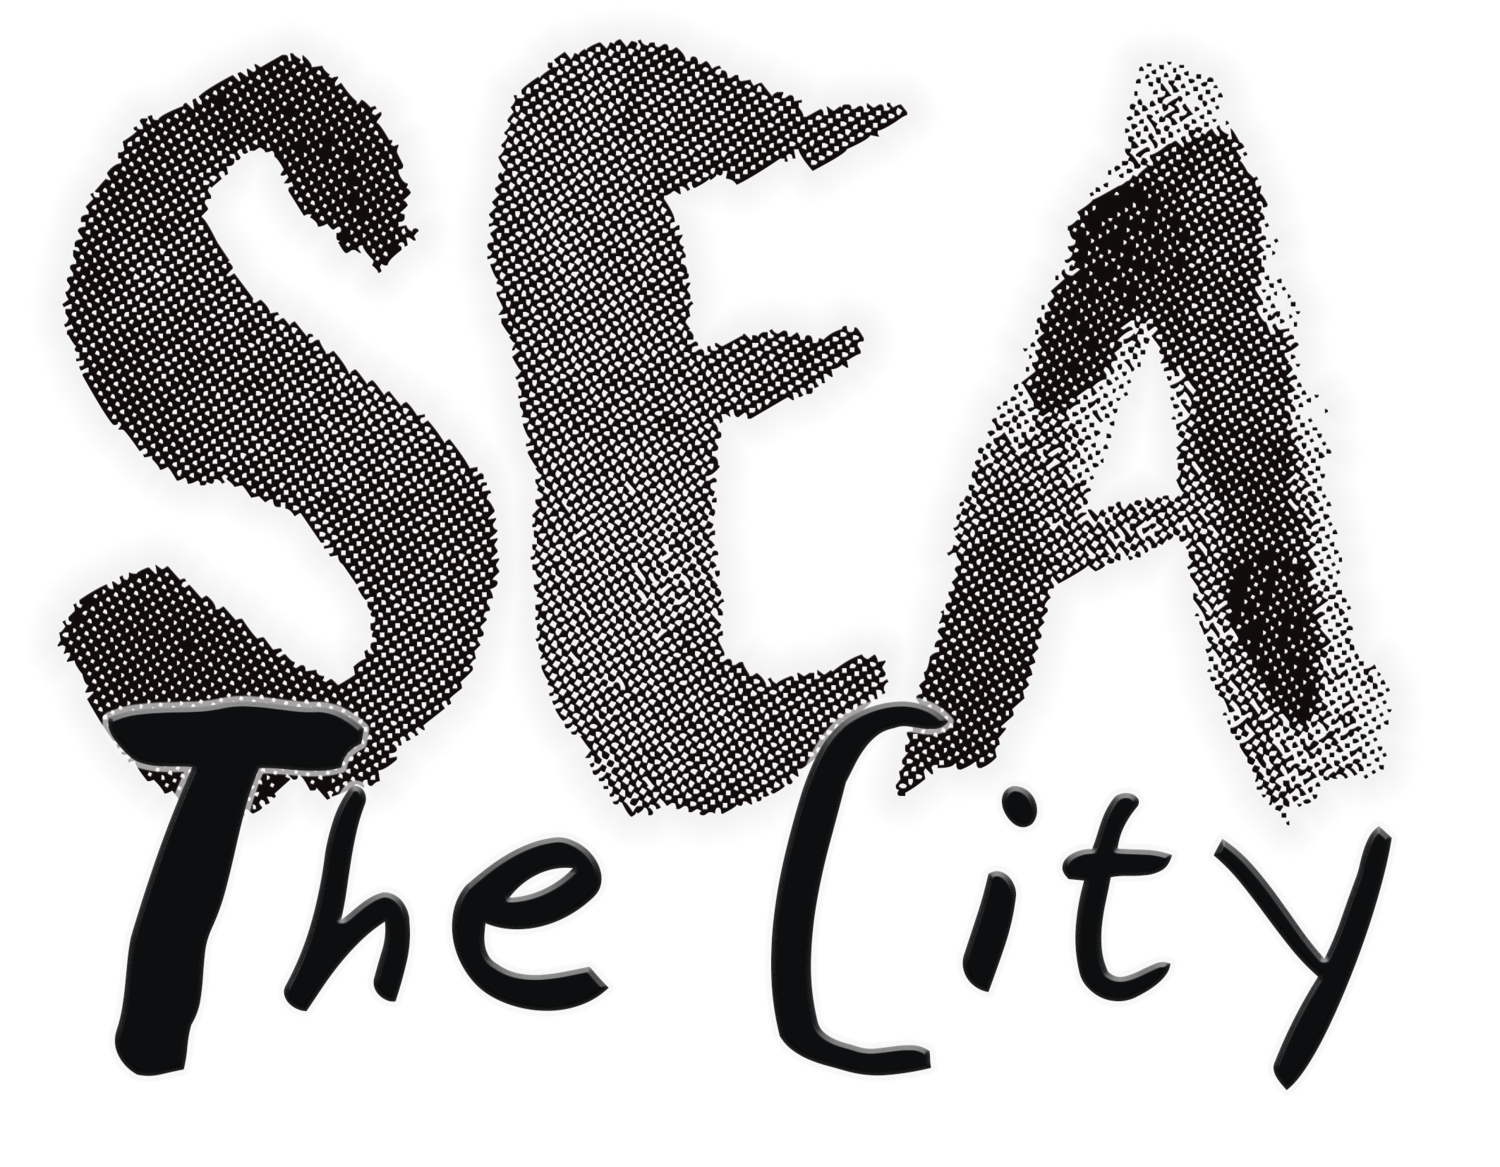 SEA The City